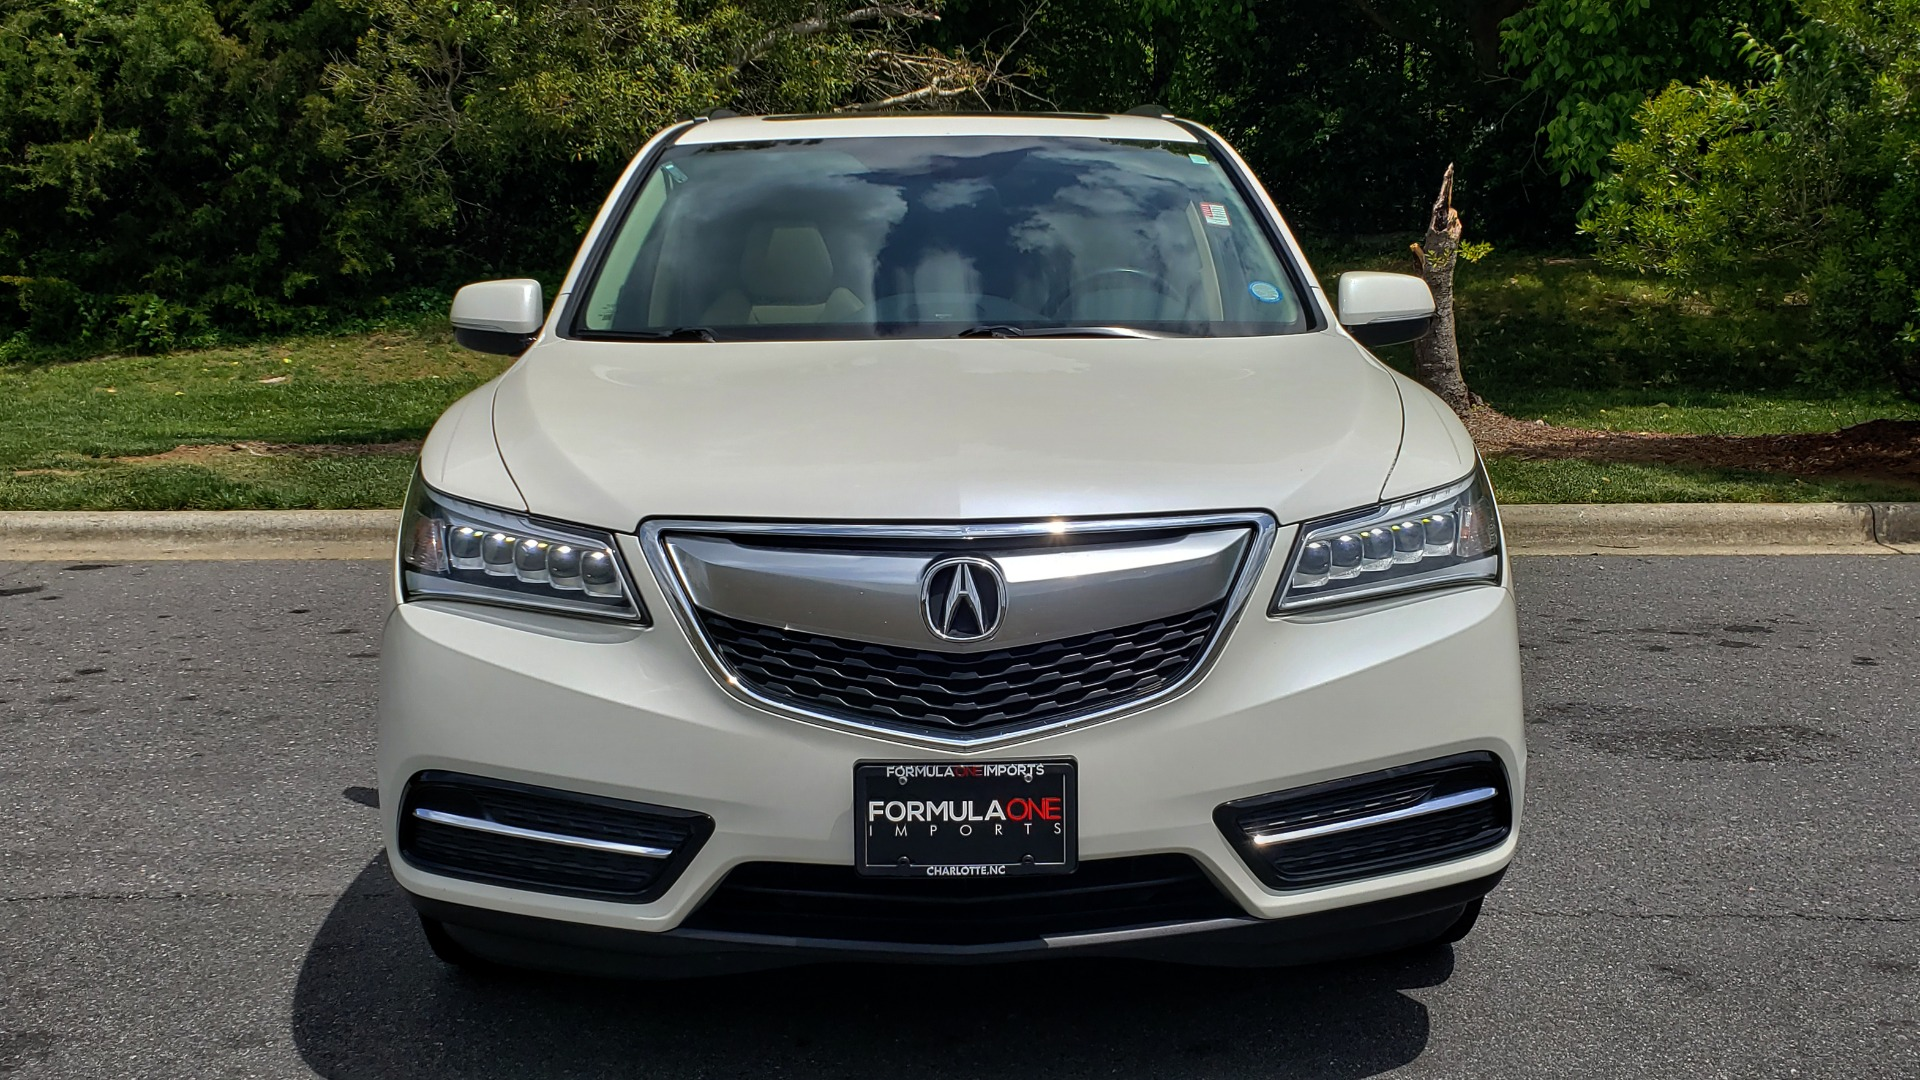 Used 2014 Acura MDX AWD / NAV / SUNROOF / 3-ROW / REARVIEW / PREMIUM SND for sale Sold at Formula Imports in Charlotte NC 28227 24